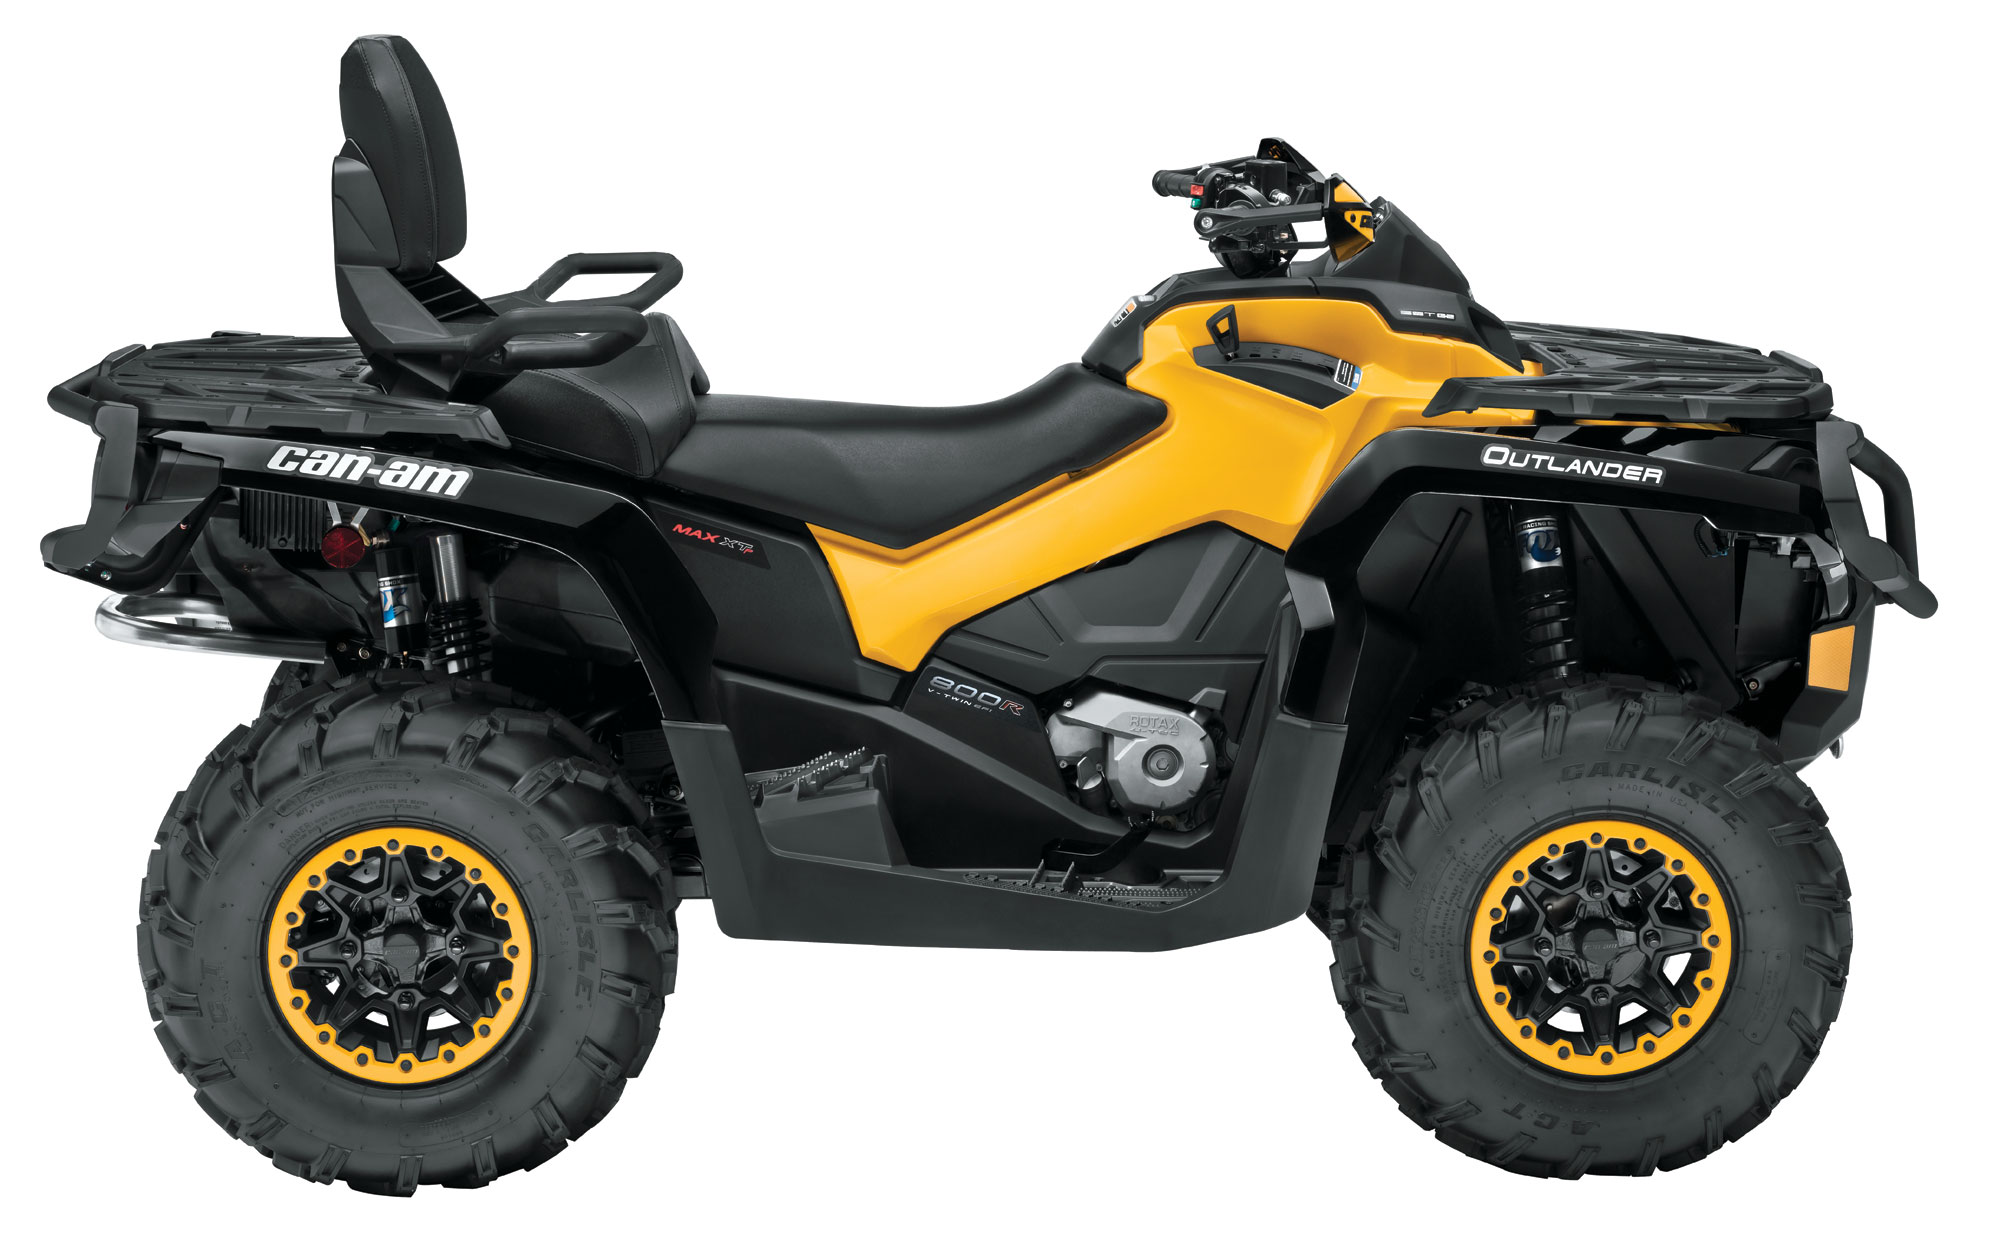 2013 Can-Am Outlander MAX XT-P 800R Review